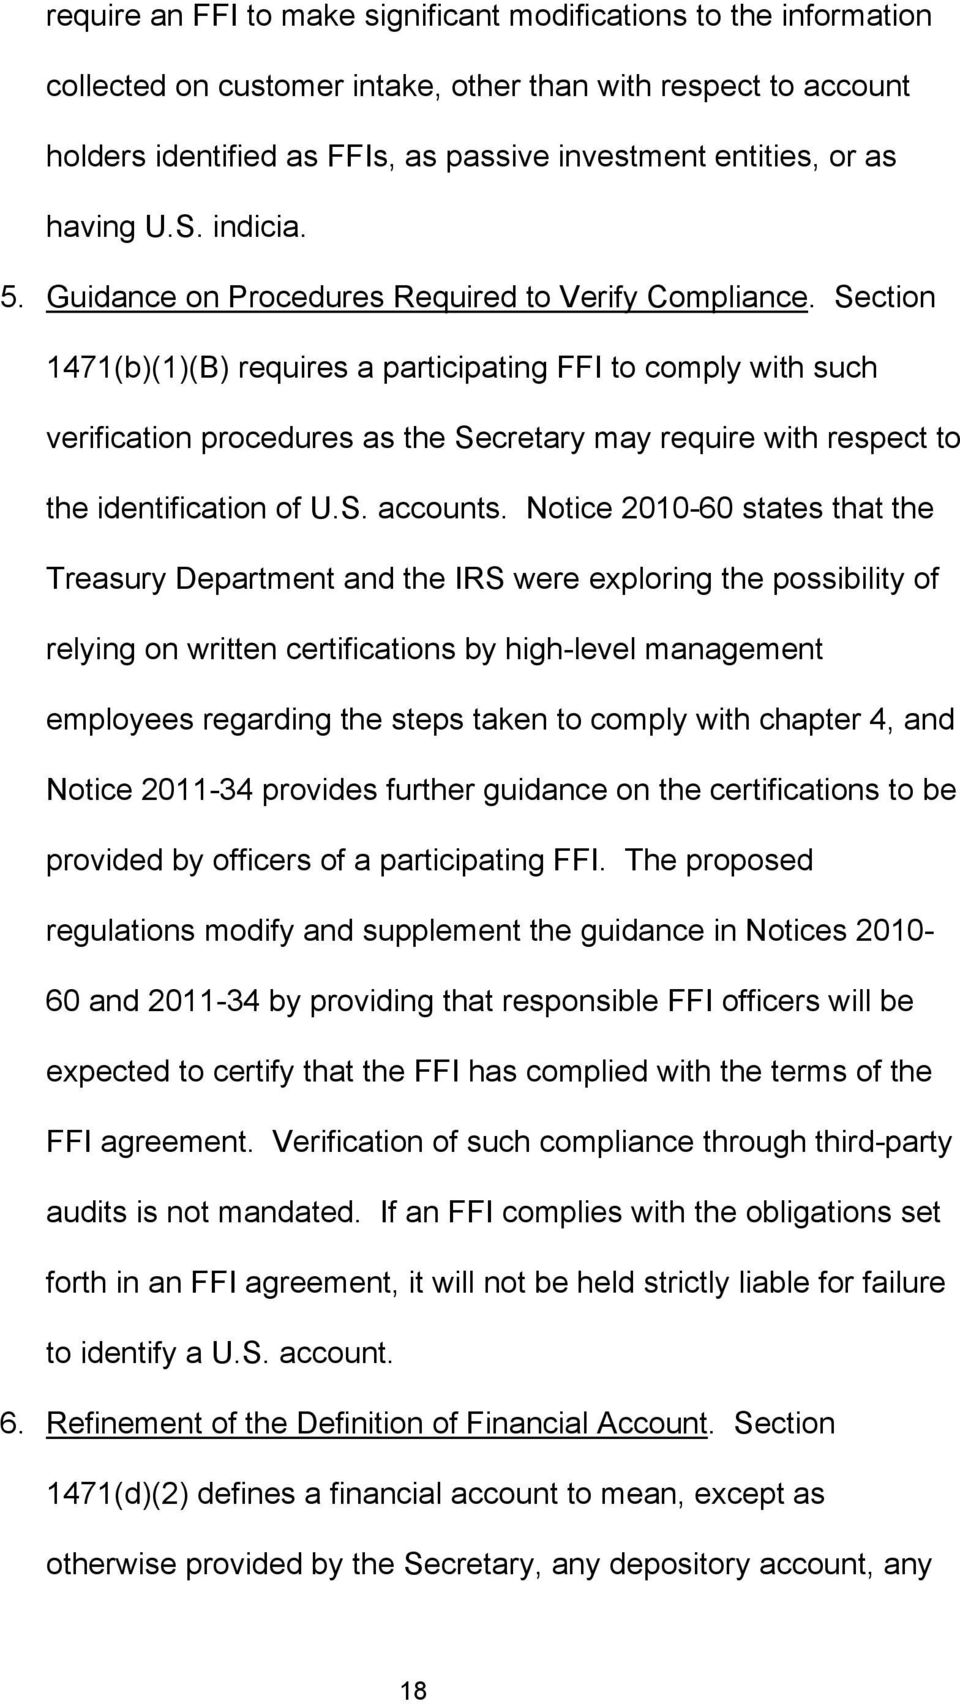 Section 1471(b)(1)(B) requires a participating FFI to comply with such verification procedures as the Secretary may require with respect to the identification of U.S. accounts.